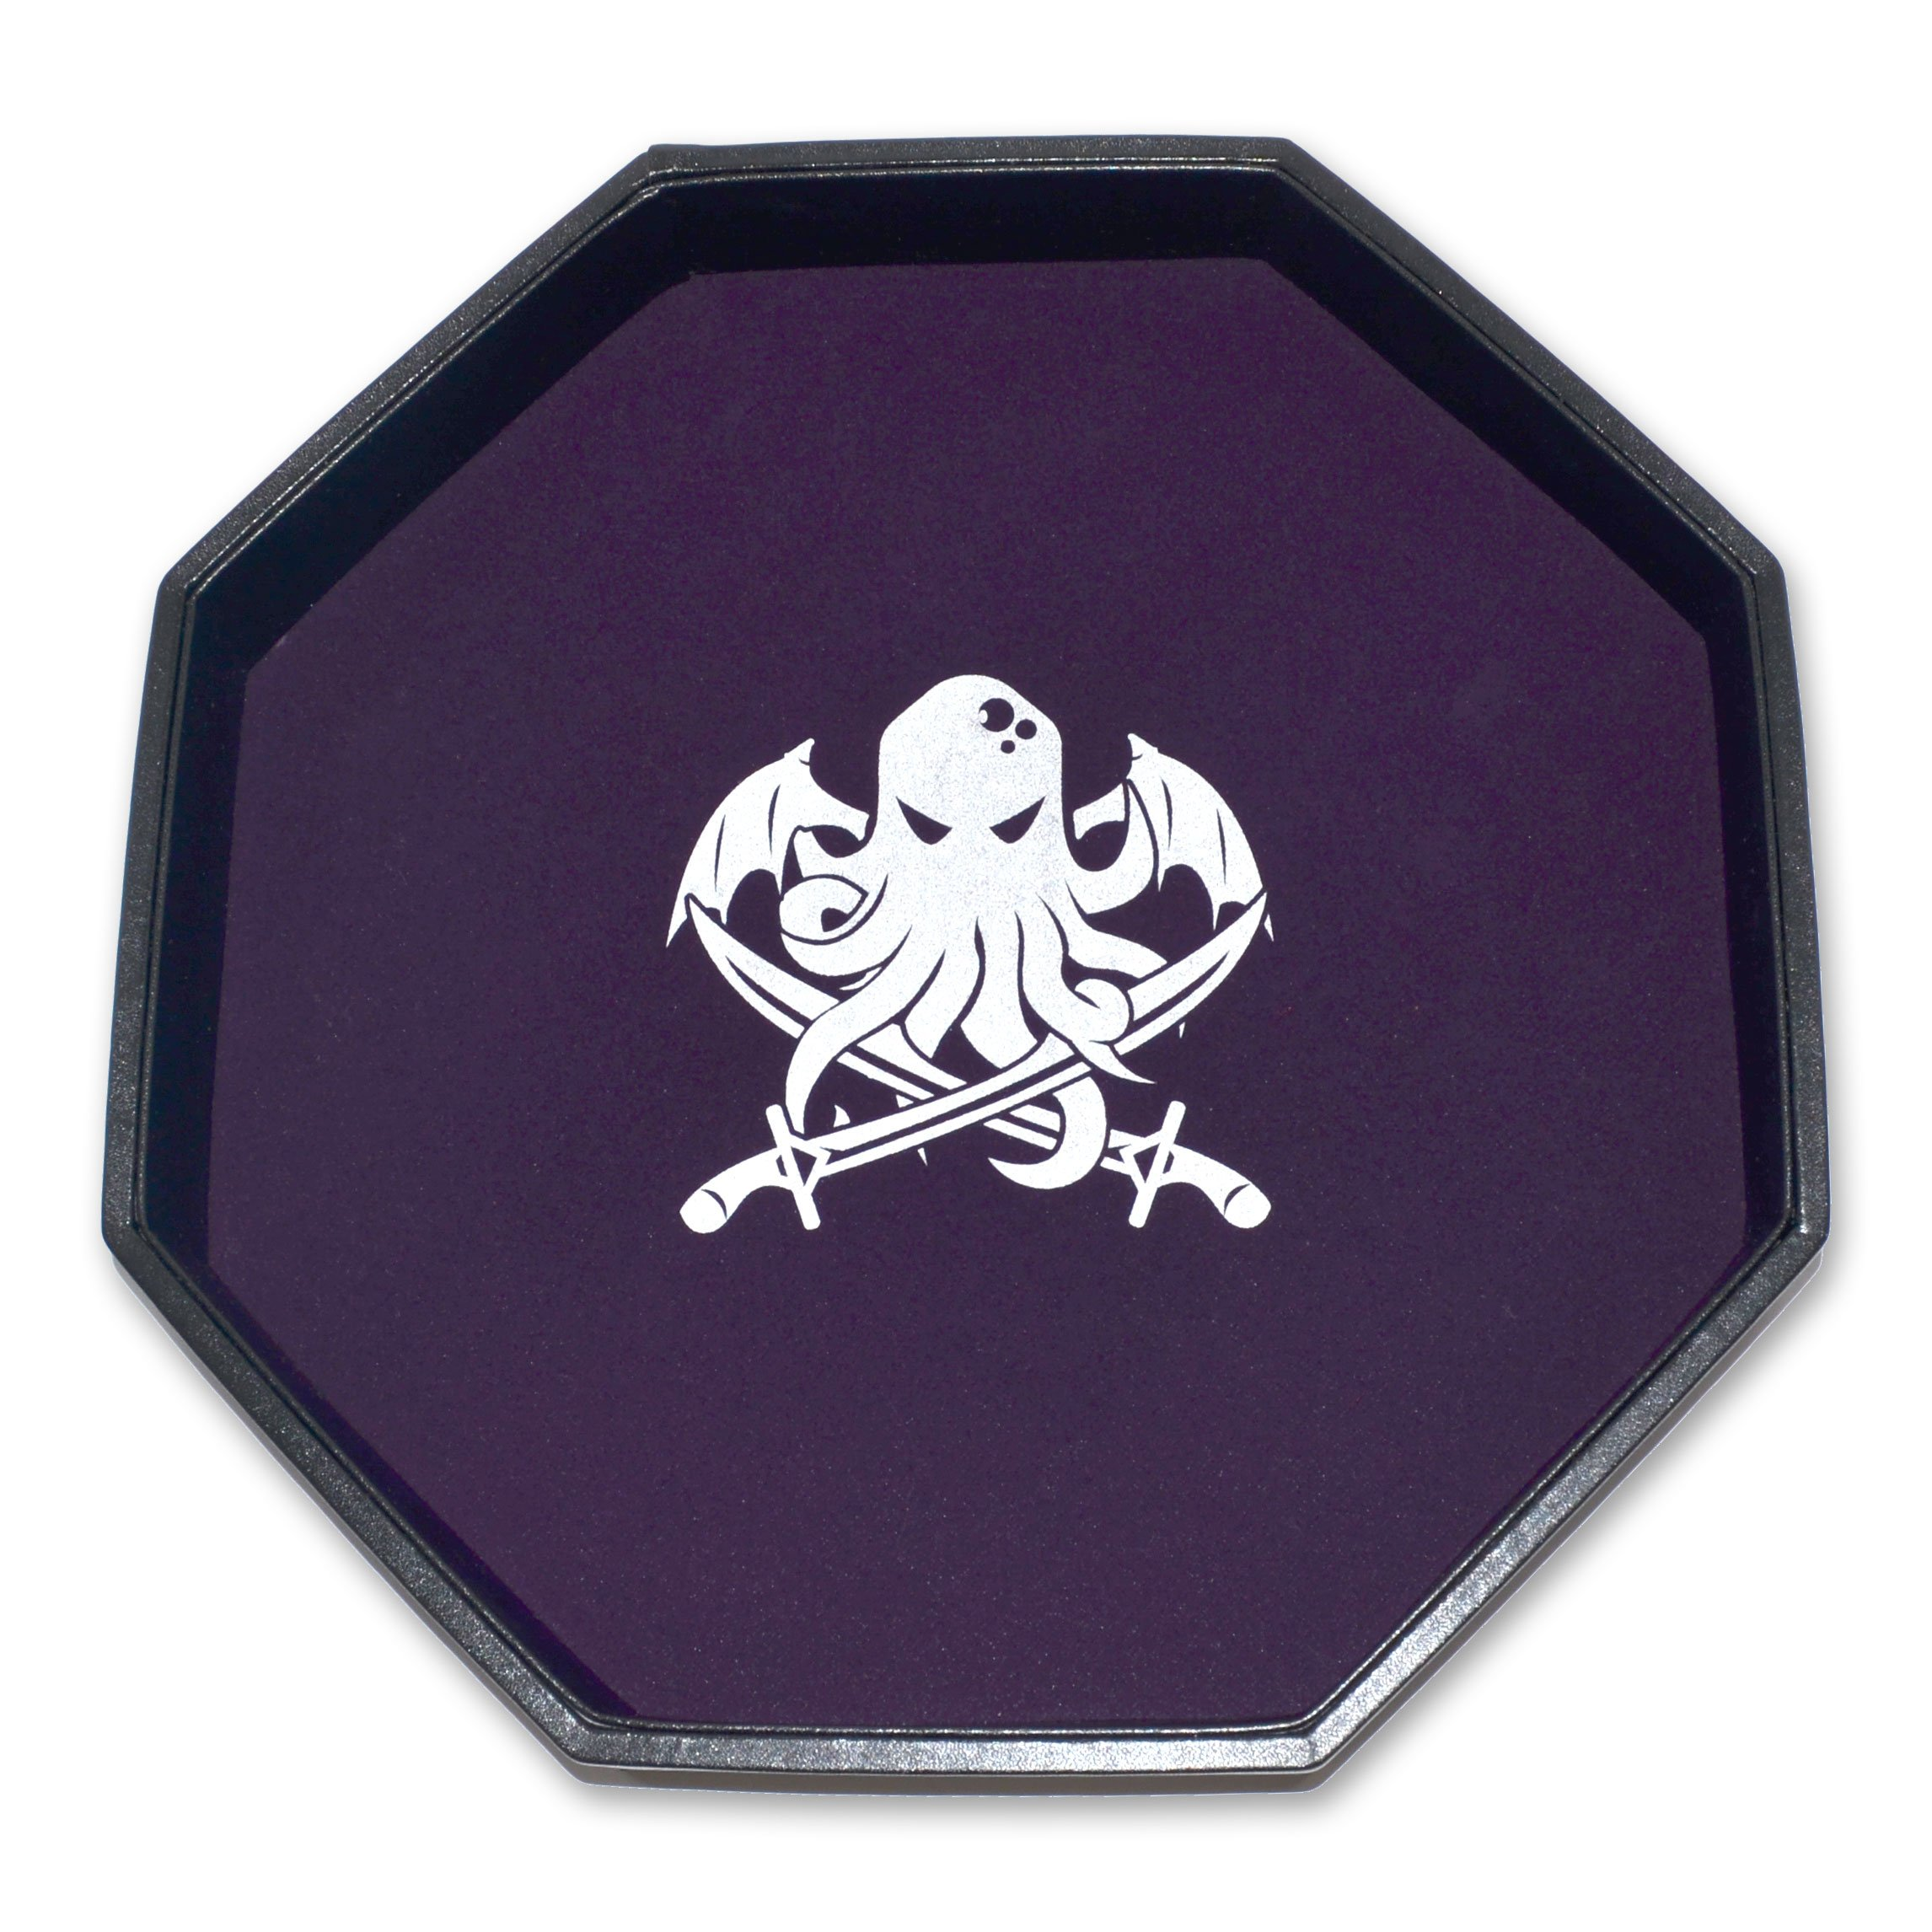 Darksilver Forge Dice Tray - 11.5'' Octagon - Cthulhu's Lair - Purple Felt Liner, Padded Leatherette Walls - for Any Dice or Board Games, Tabletop RPGs Like D&D (DND), Pathfinder Roleplaying Game